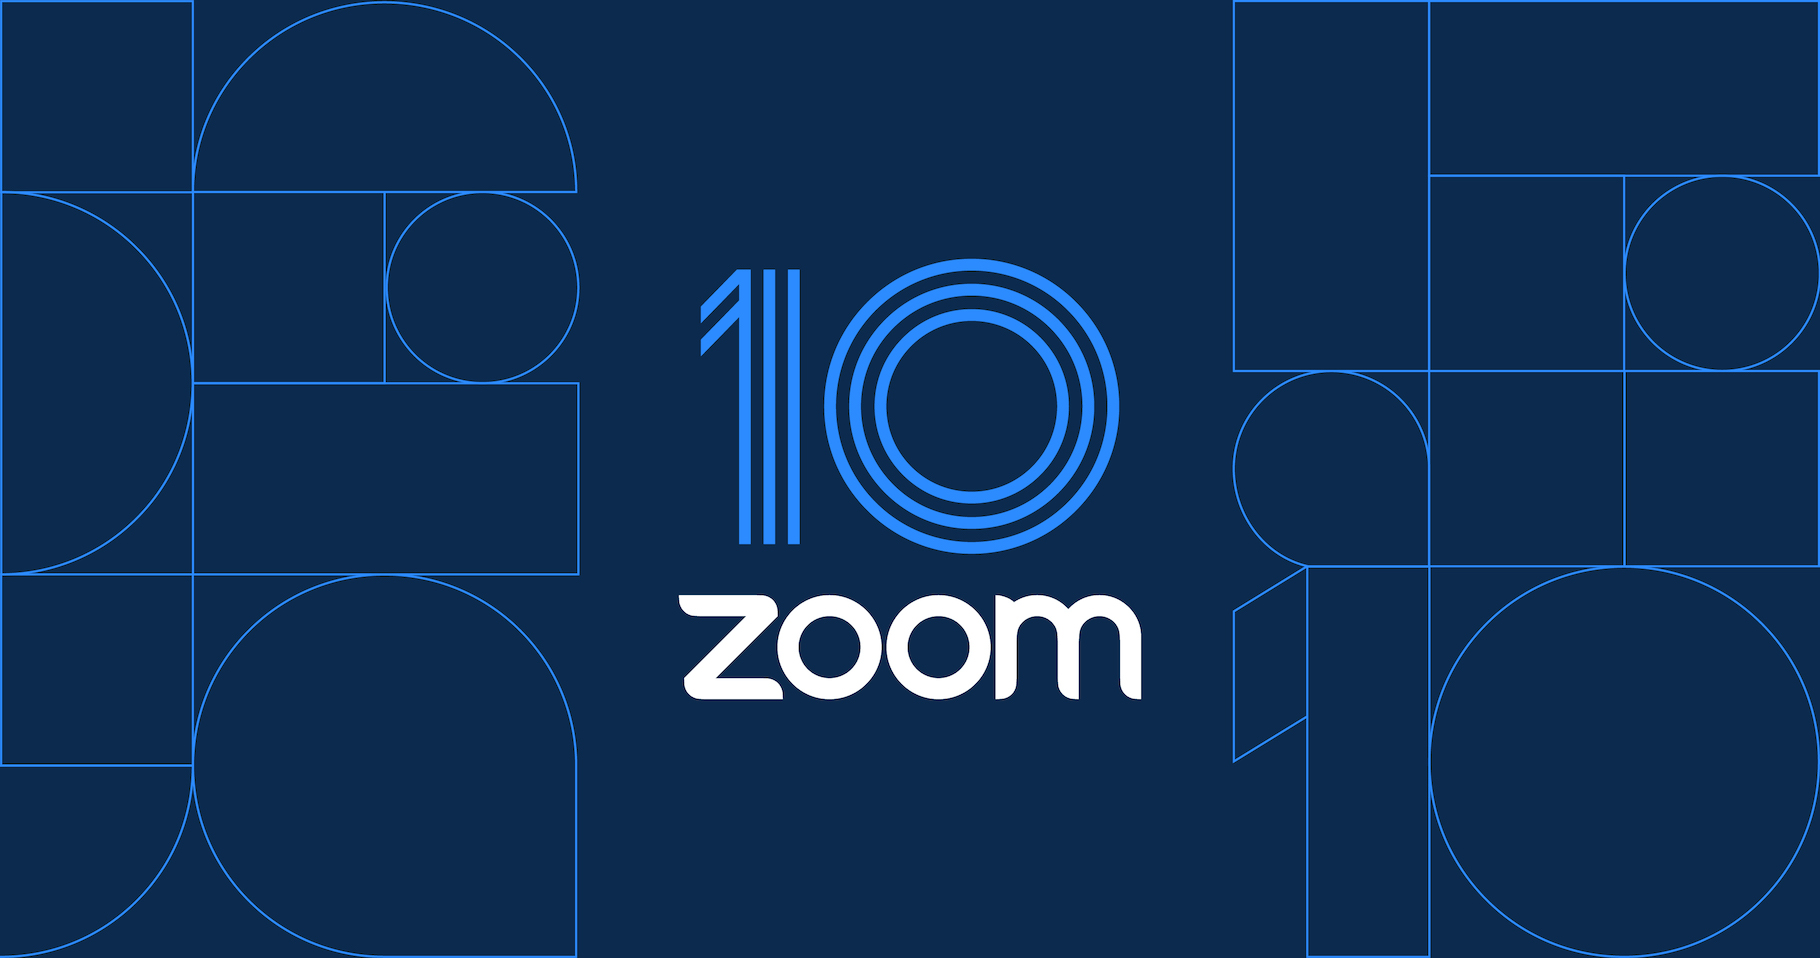 Celebrating 10 Years of Zoom: Thank You to Our Customers - Zoom Blog